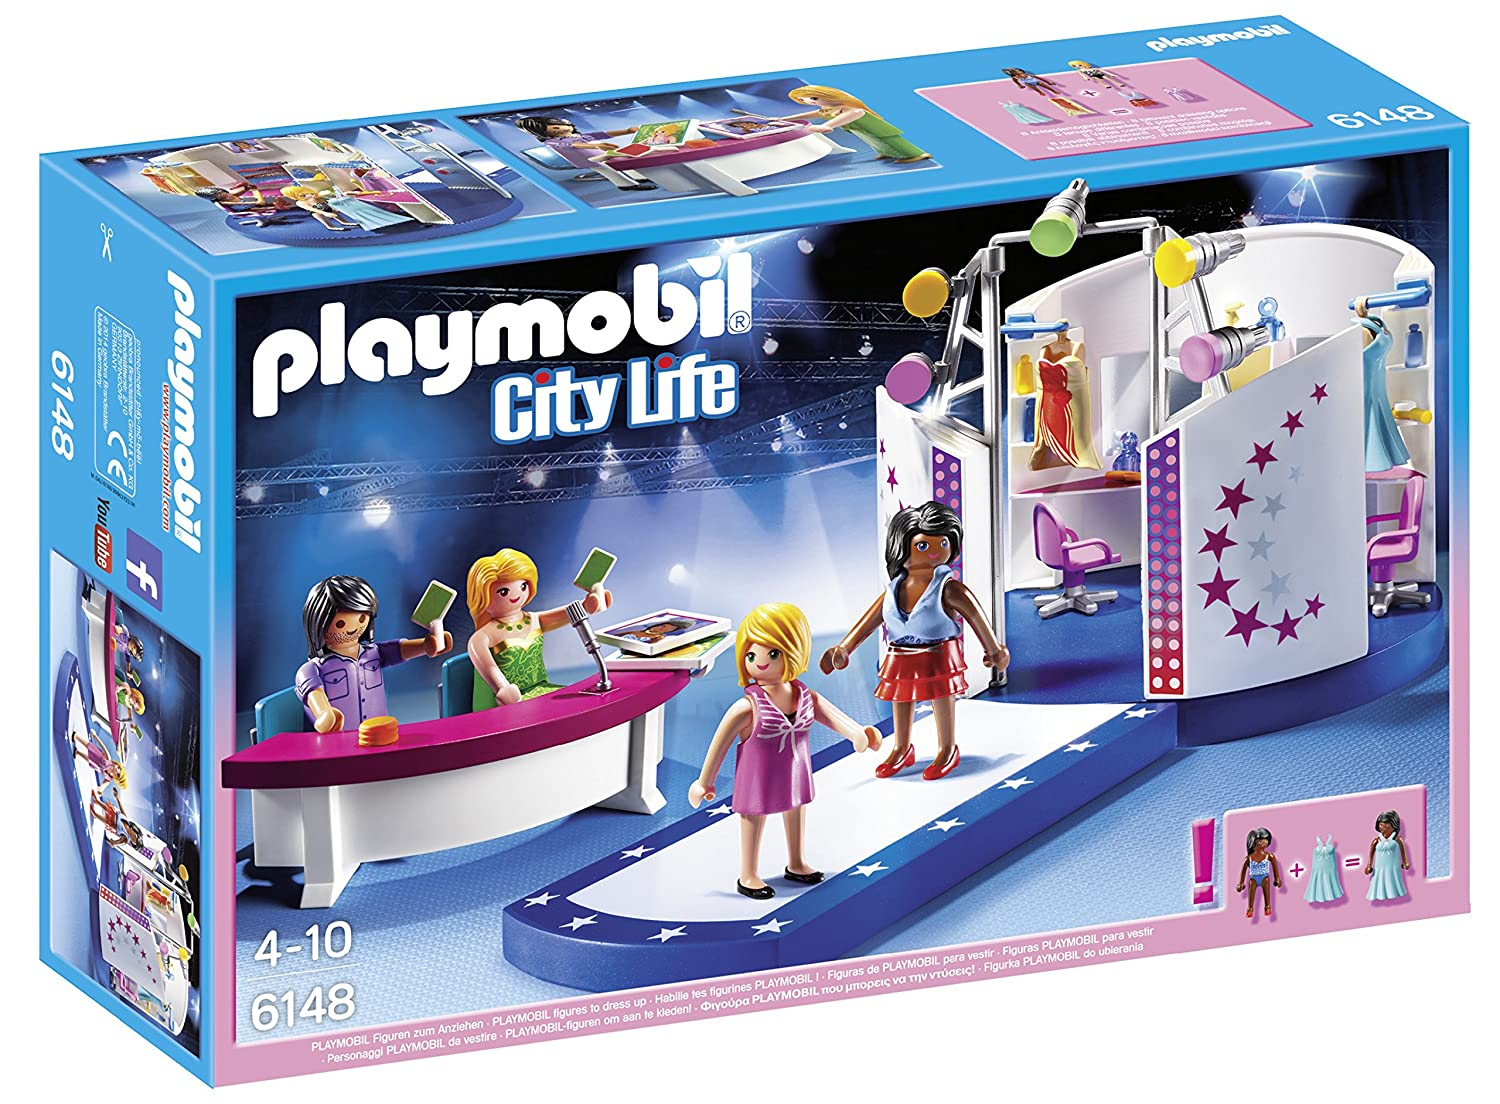 Playmobil City Life Küche Müller Hot Deal Amazon Big Markdowns On Playmobil Sets Save